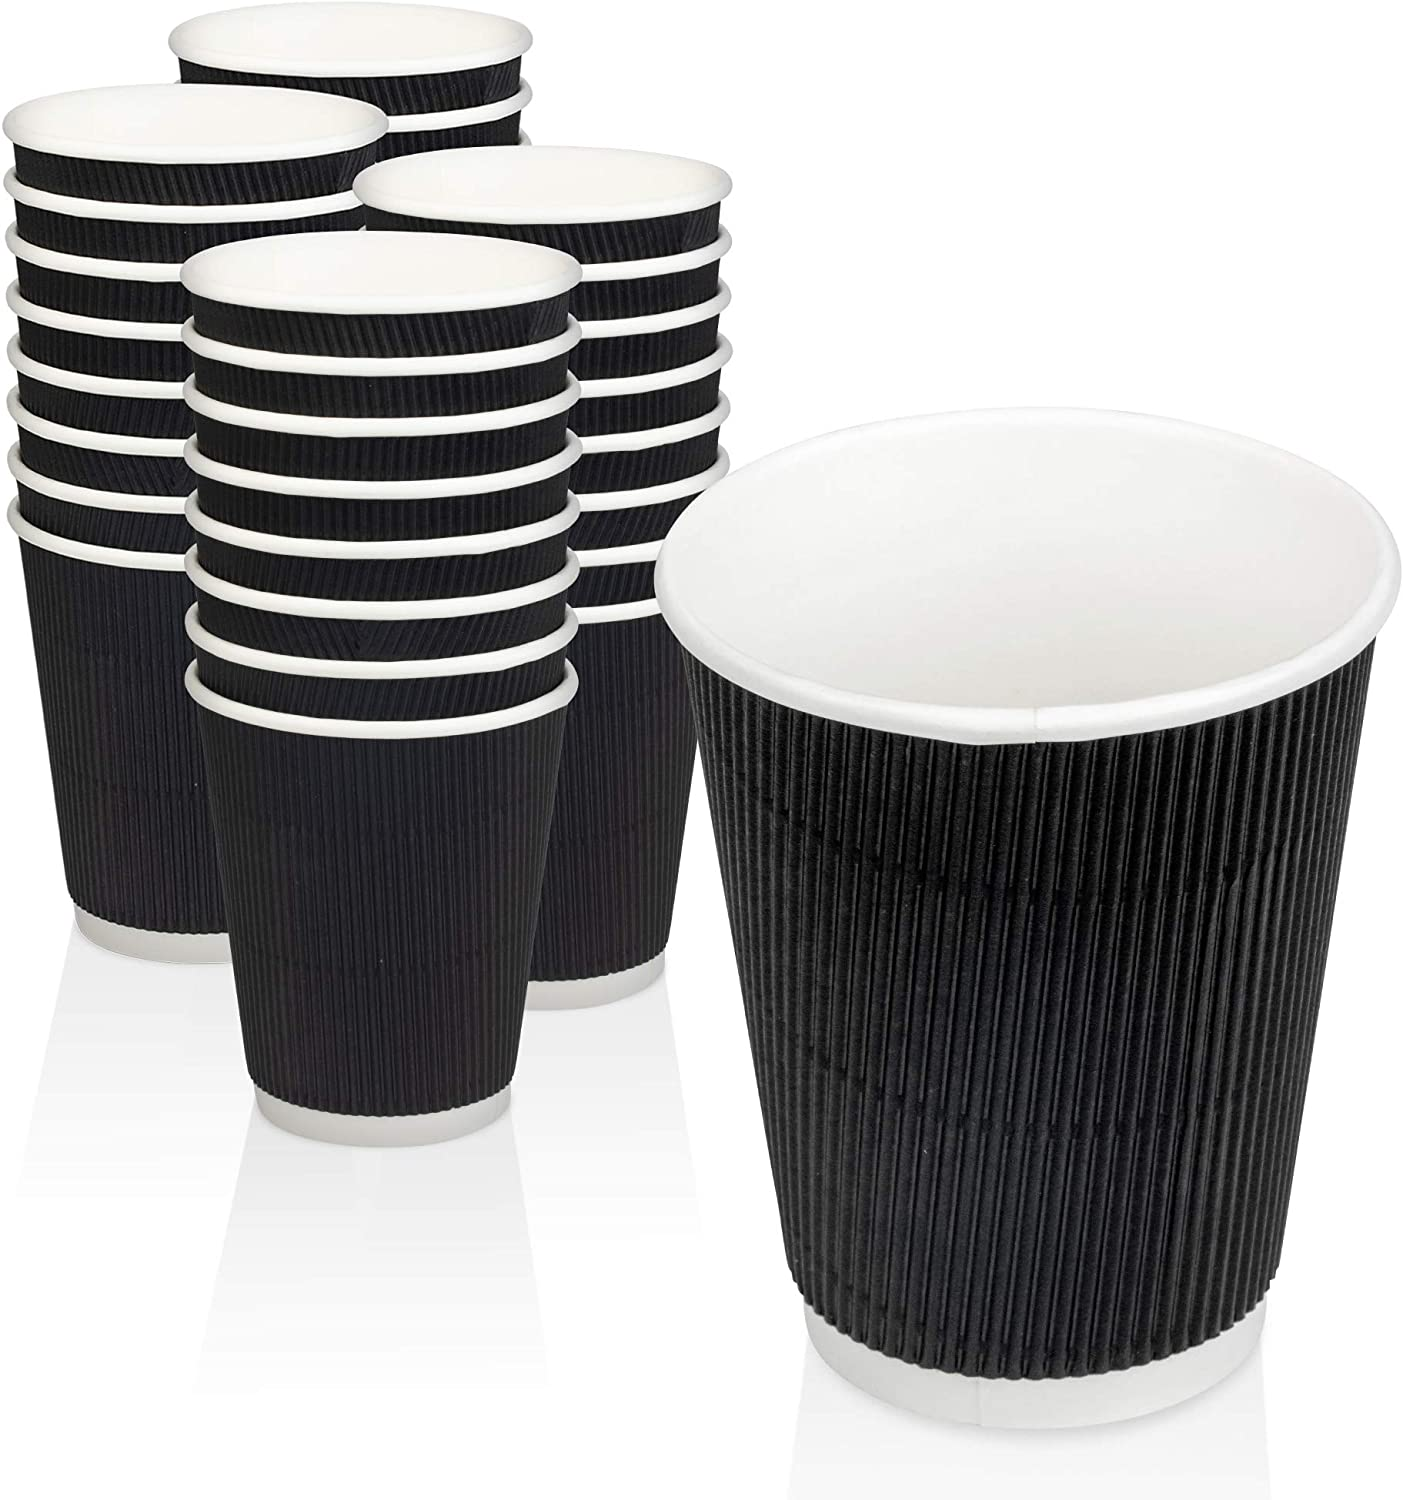 500 Pack Some reservation Disposable Hot Cups - Insulated Double Wall 8oz Black Free Shipping Cheap Bargain Gift